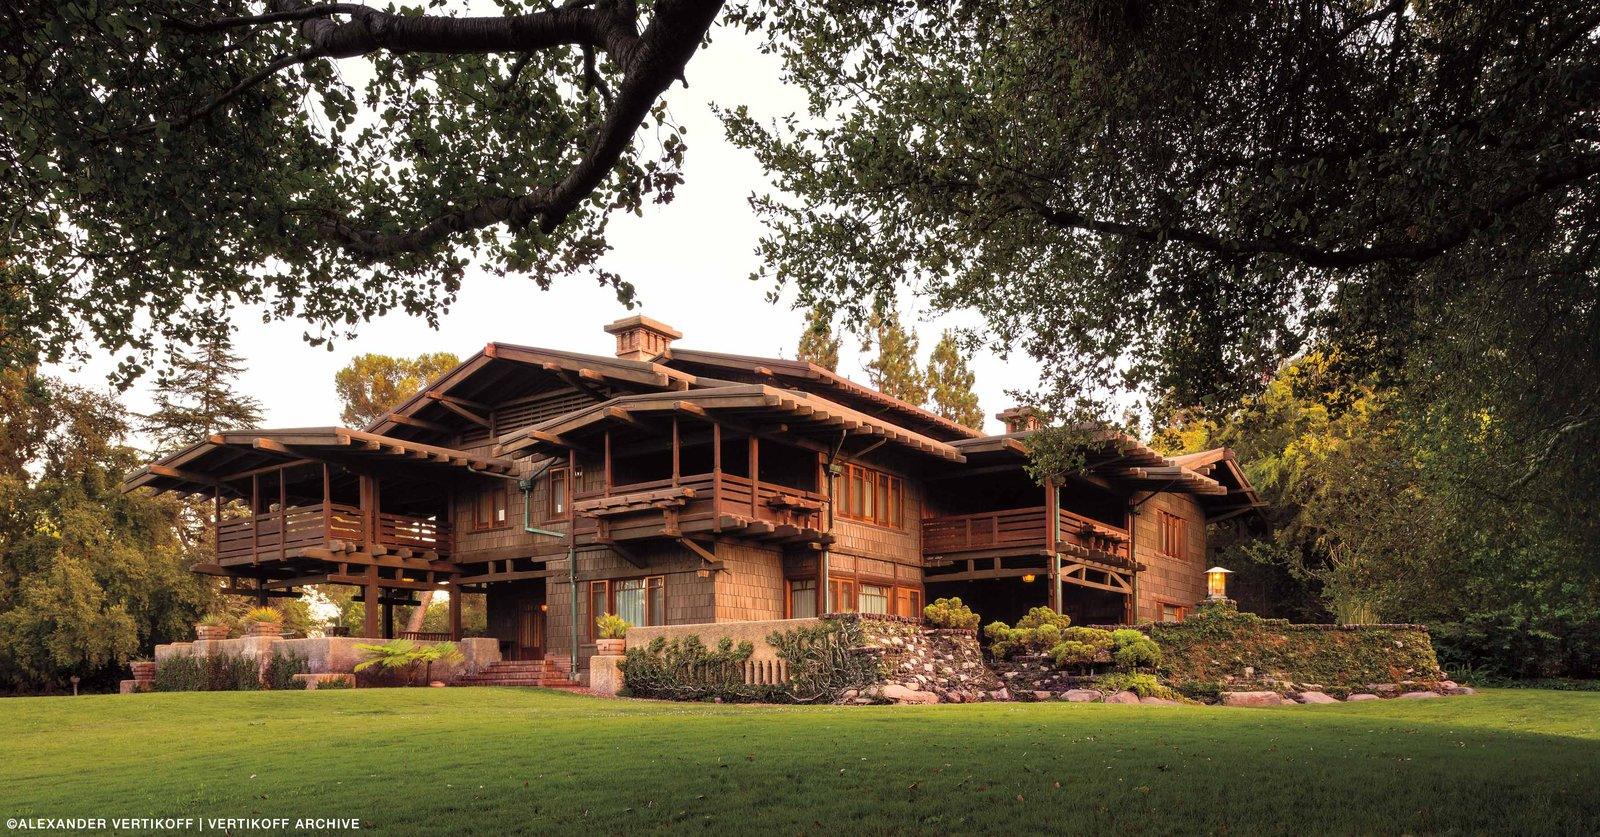 Exterior, House Building Type, Wood Siding Material, and Gable RoofLine The Gamble House, which was built by the Greene Brothers for the Proctor and Gamble family in 1908, is known as one of the most authentic and well-preserved examples of the Arts and Crafts movement that spread like a wildfire in the Los Angeles neighborhood of Pasadena. Every detail of the the house was crafted by hand with an abundance of natural materials. Photo by Alexander Vertikoff, Courtesy of the Gamble HouseUltimate bungalows  Photo 2 of 8 in Iconic Perspectives: Greene & Greene's Gamble House